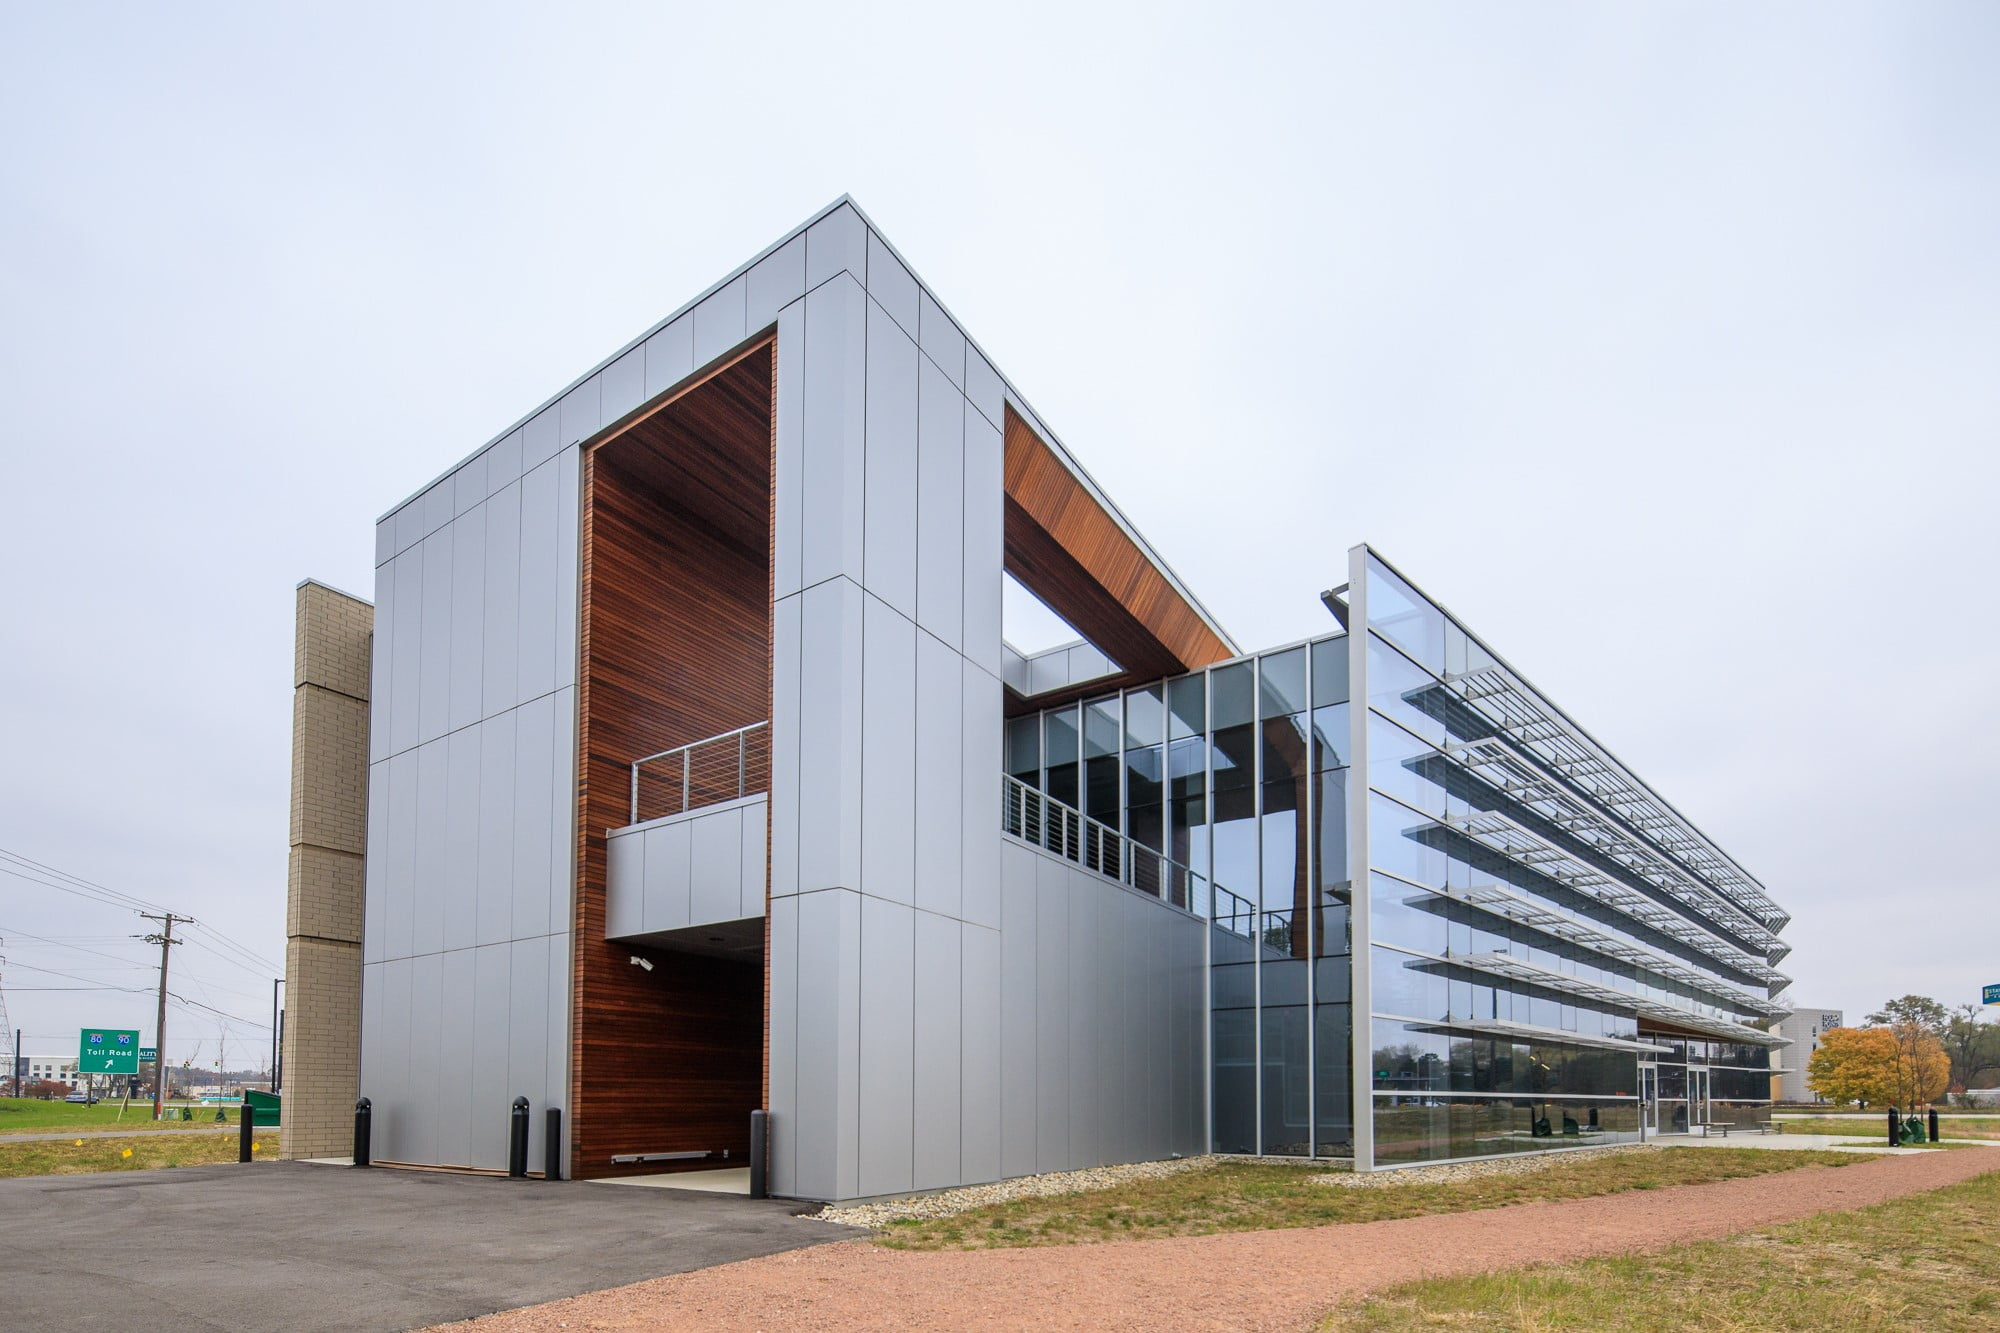 Indiana Toll Road Administration Building Achieves First LEED Gold Certification in Indiana Under New Guidelines